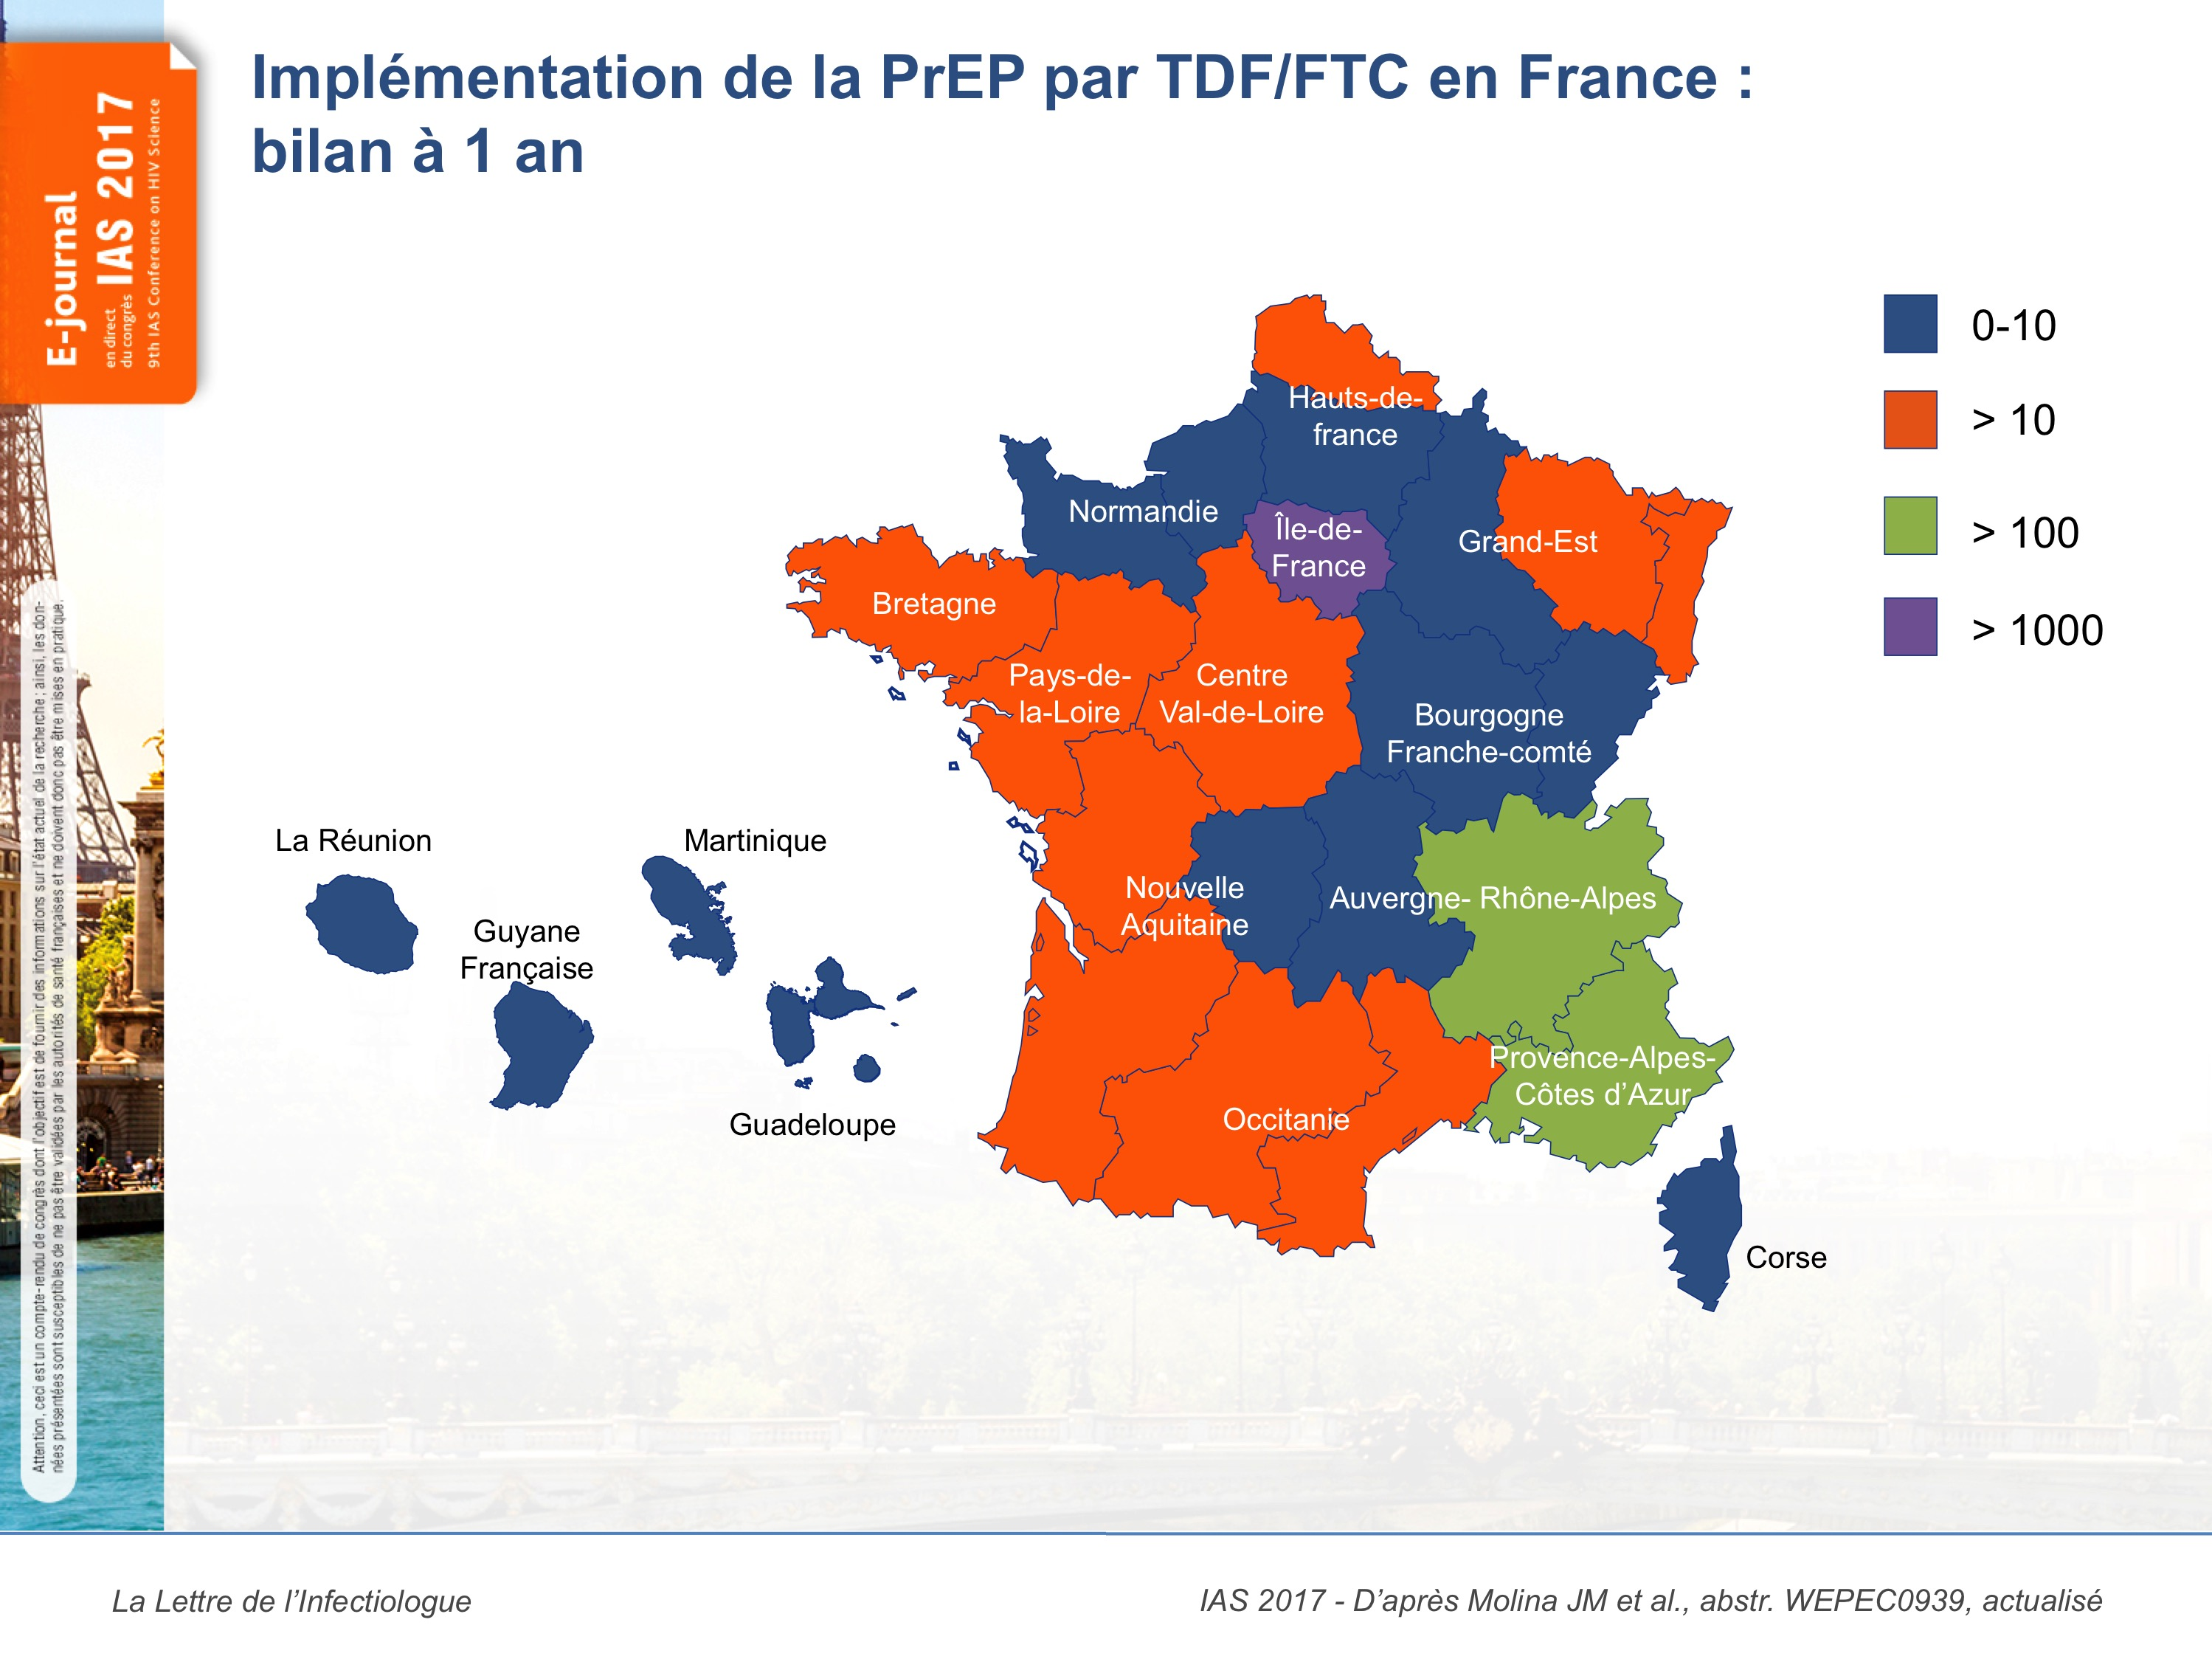 Carte de l'implémentation de la PrEP par TDF/FTC en France, 2017